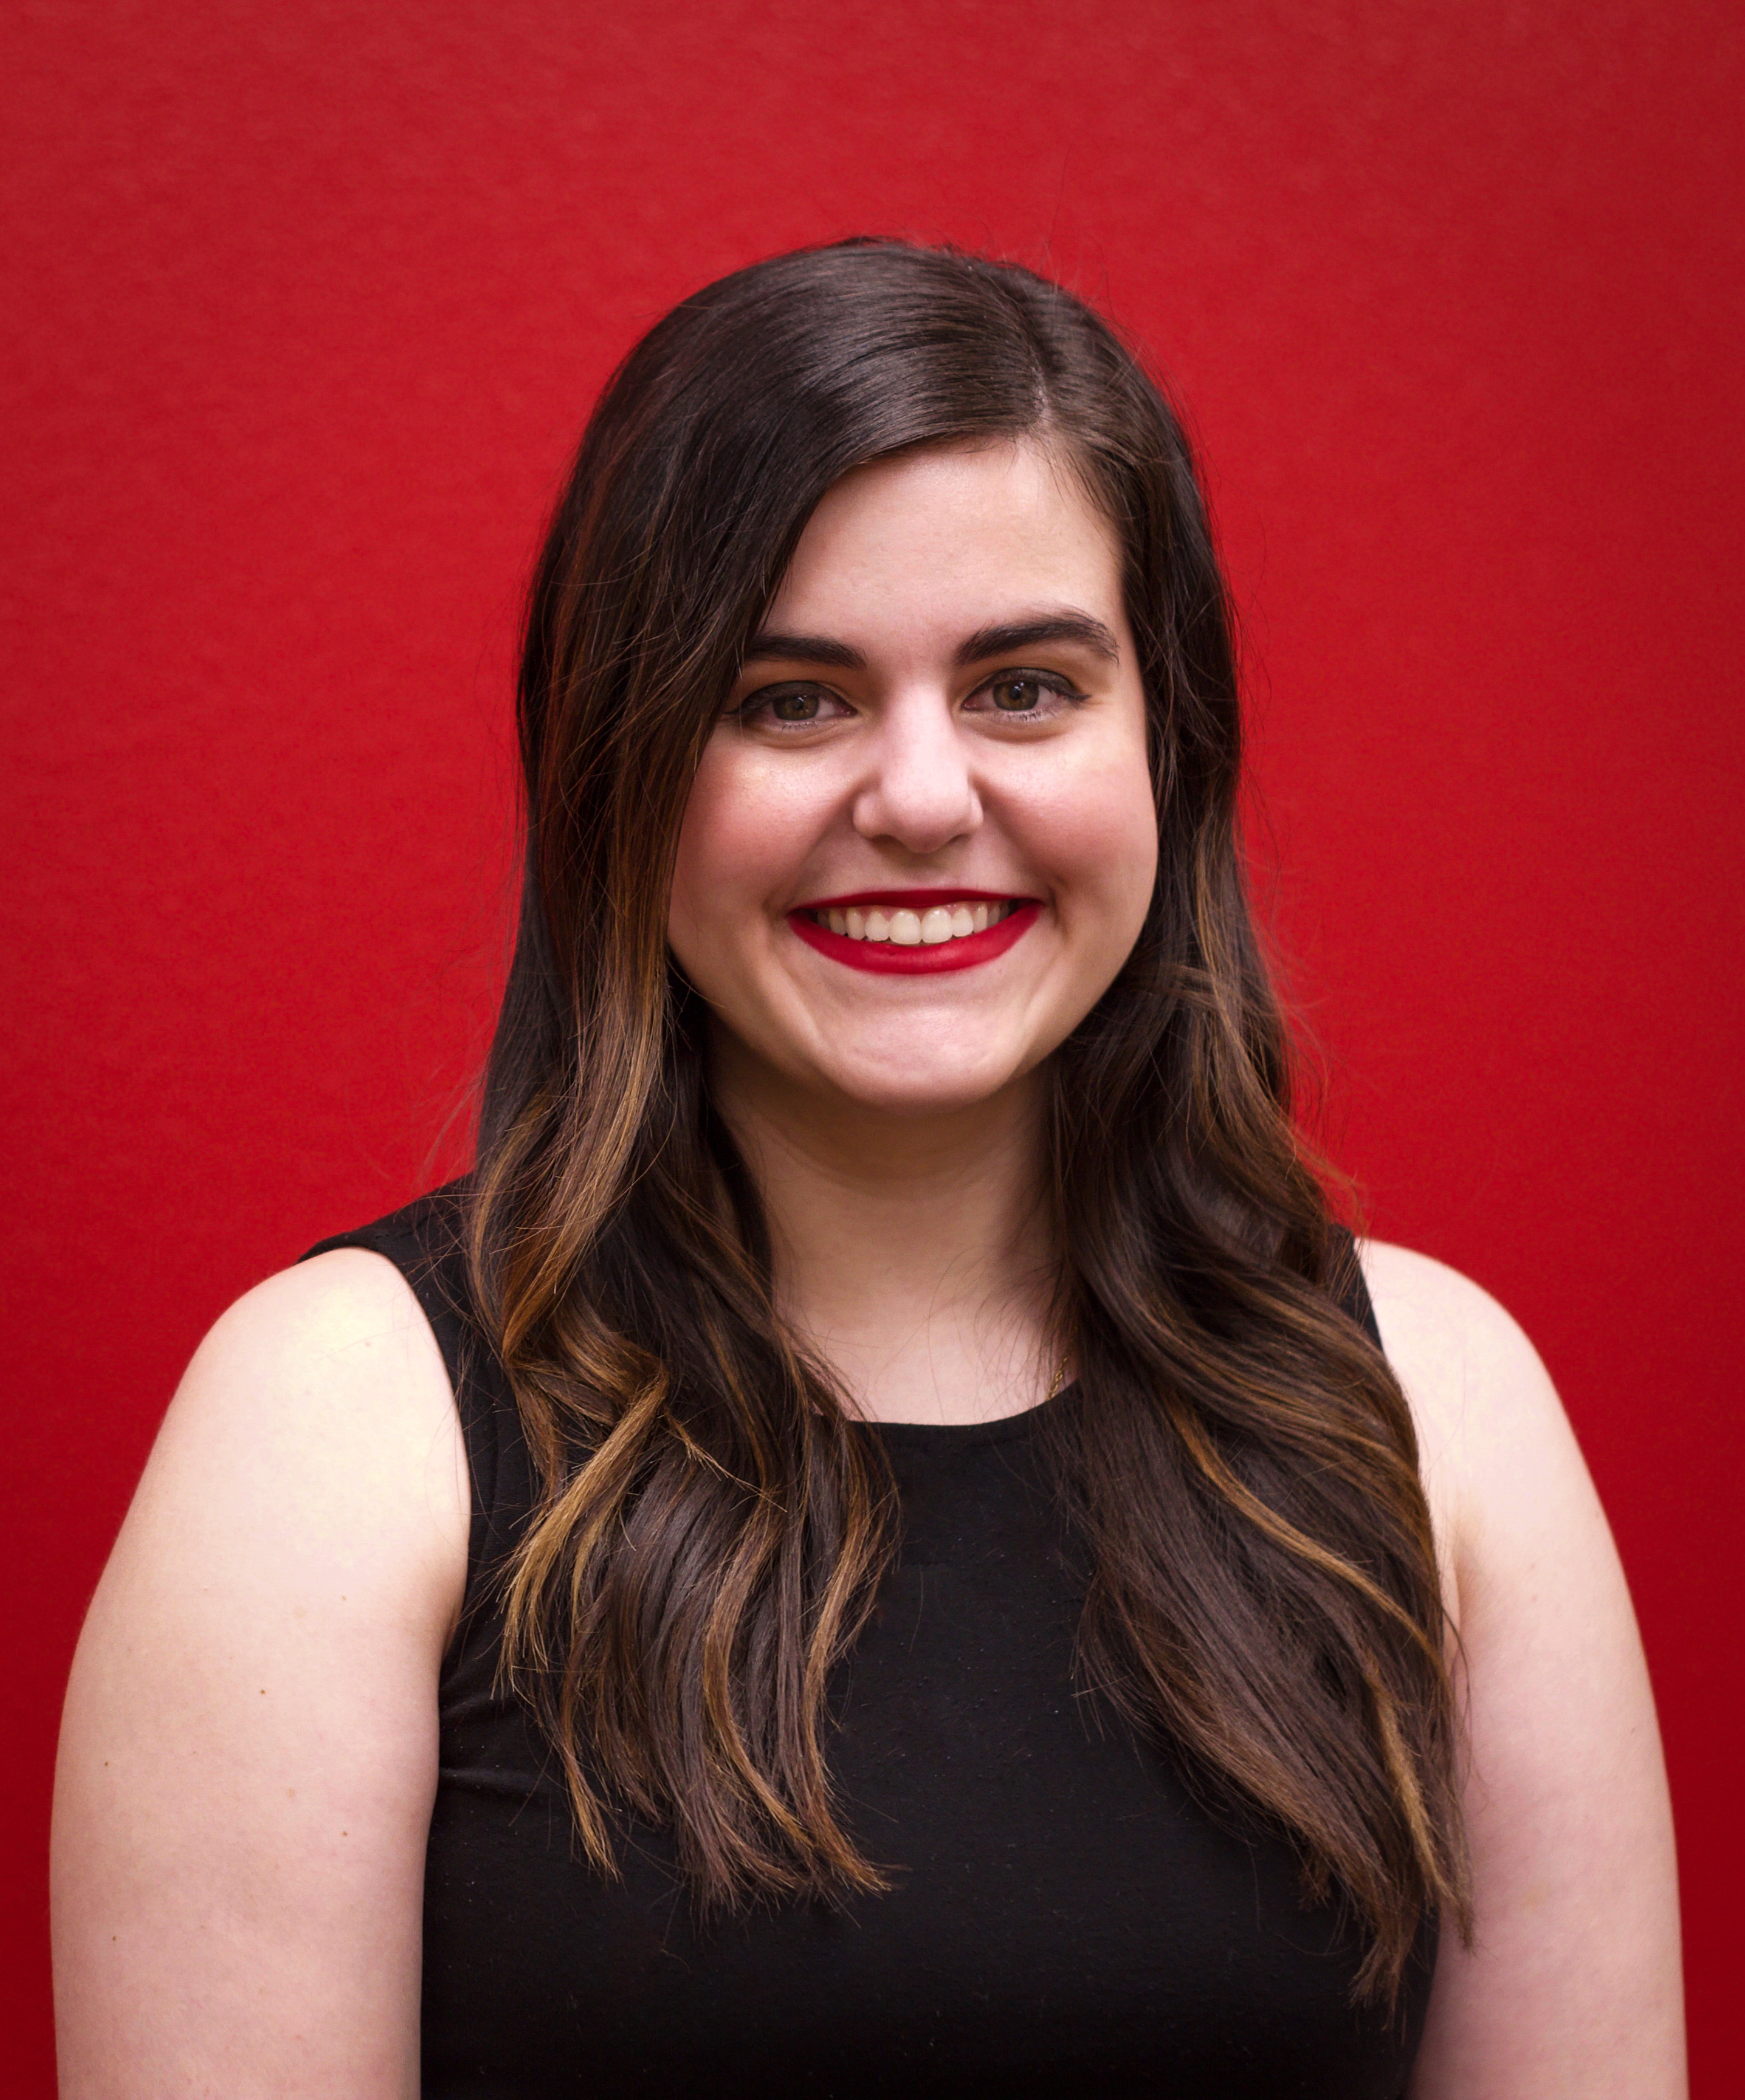 Cameron moved to the Joplin area in 2004 and has made the city her permanent home. She has been with Keller Williams realty of SWMO since 2016 as Director of First Impressions, but in May of 2018, she joined the Debbie Hutson Team as our Buyer's Specialist. She is excited to be part of the team and is looking forward to the opportunities of her new role working with our clients and providing the highest level of service and overall satisfaction.